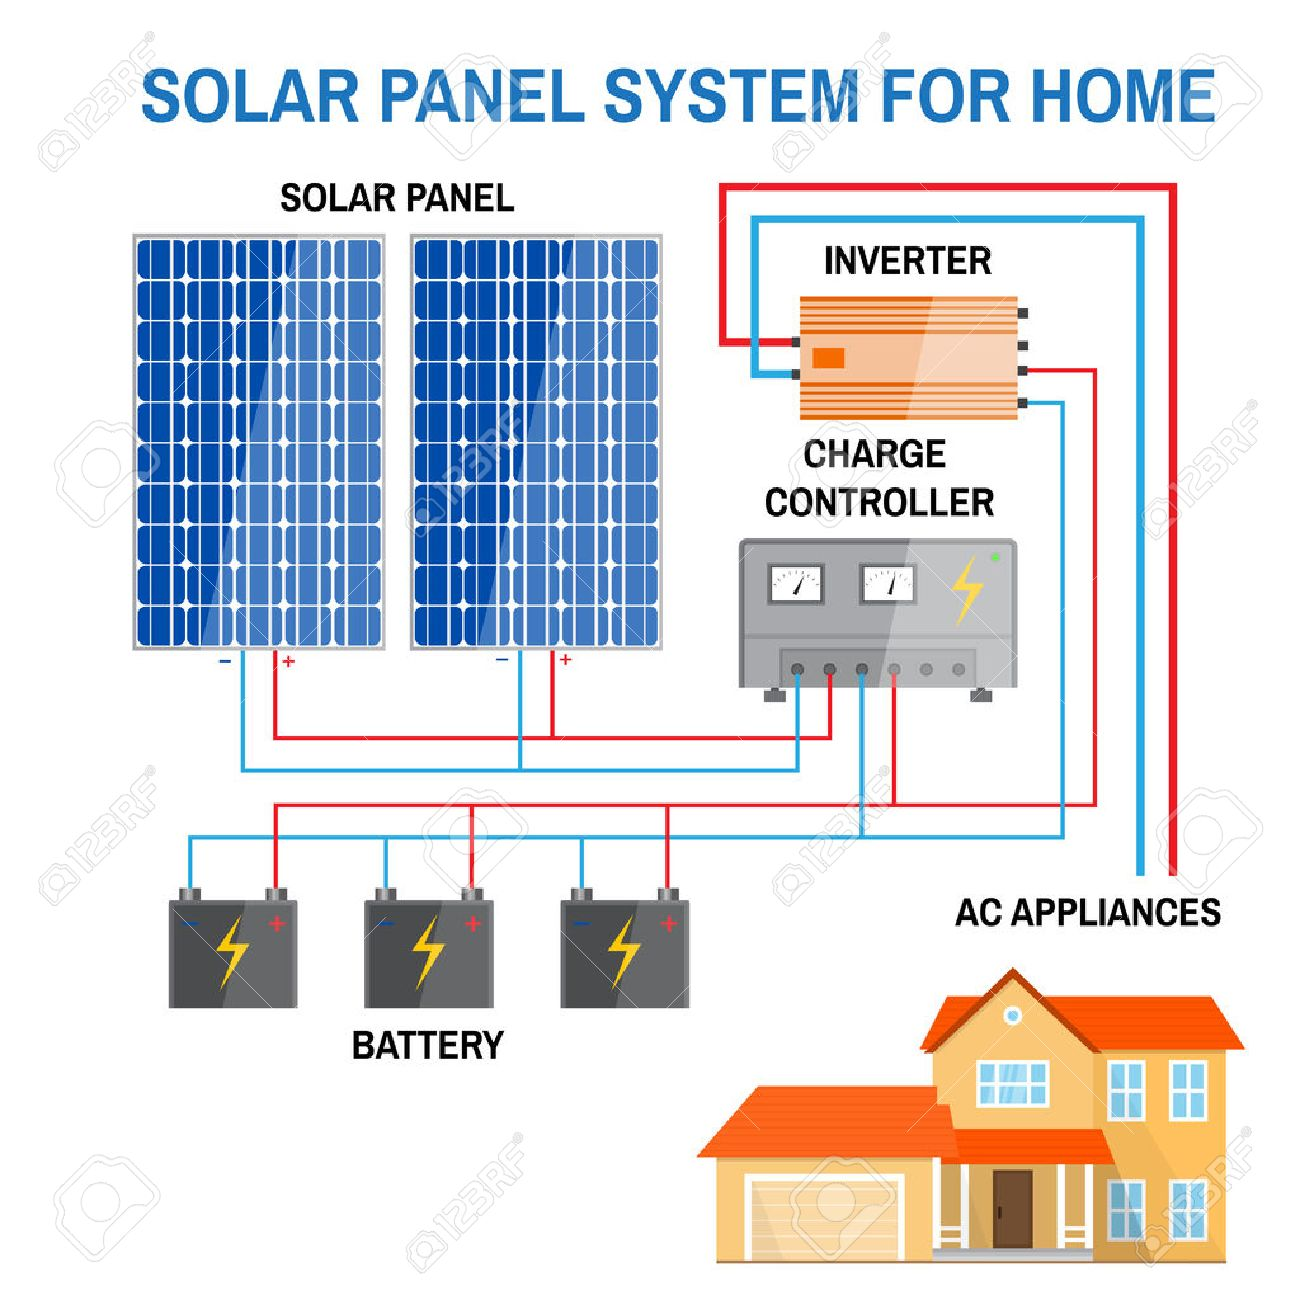 hight resolution of solar panel system for home renewable energy concept simplified simplified diagram of an offgrid solar power system